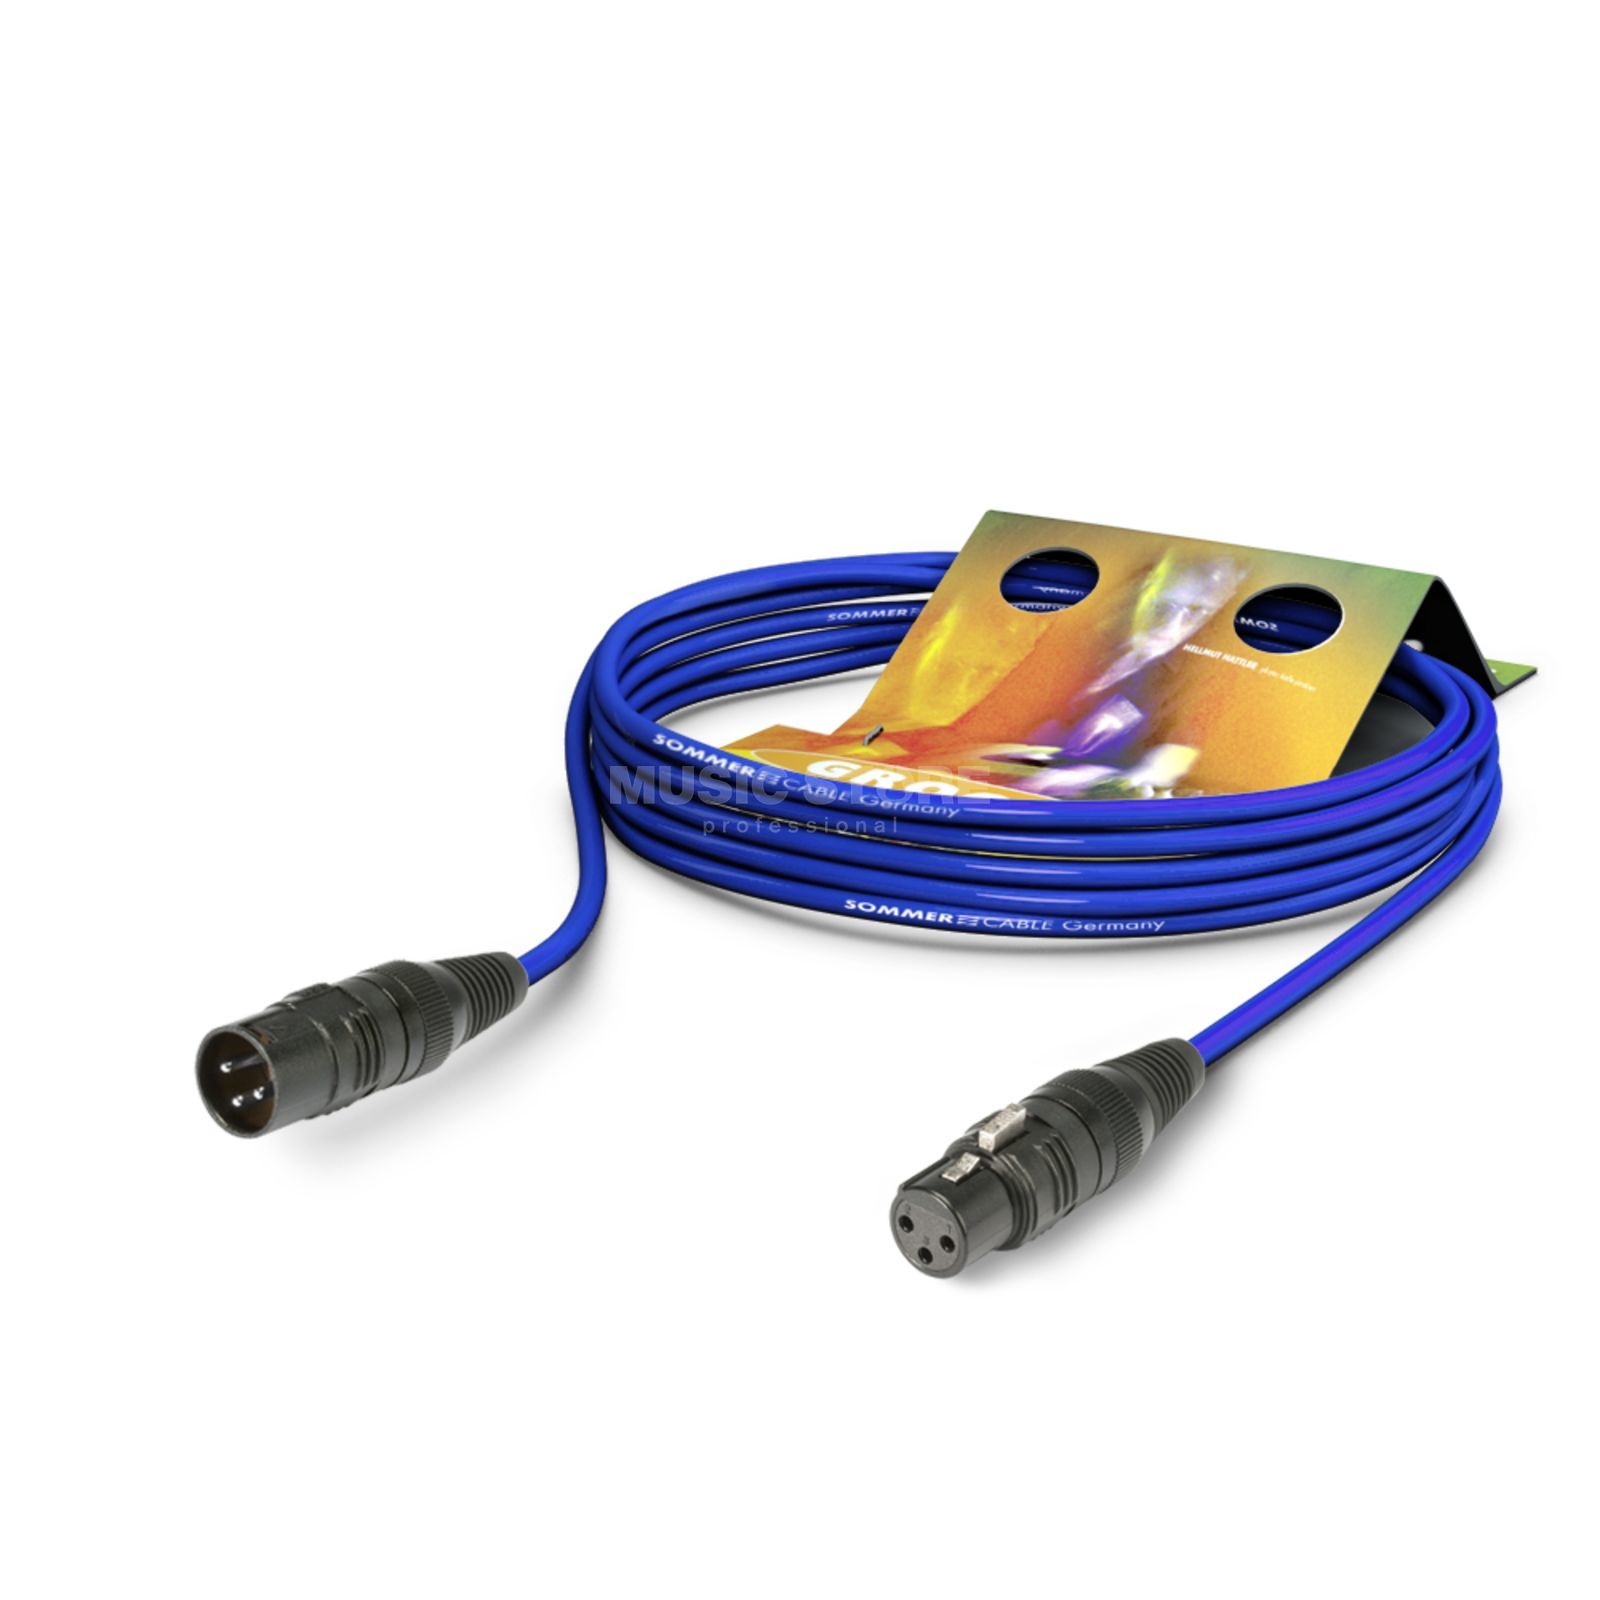 Sommer Cable Mikrofonkabel SC-STAGE 10m blau HICON, SGCE-1000 BL Produktbild